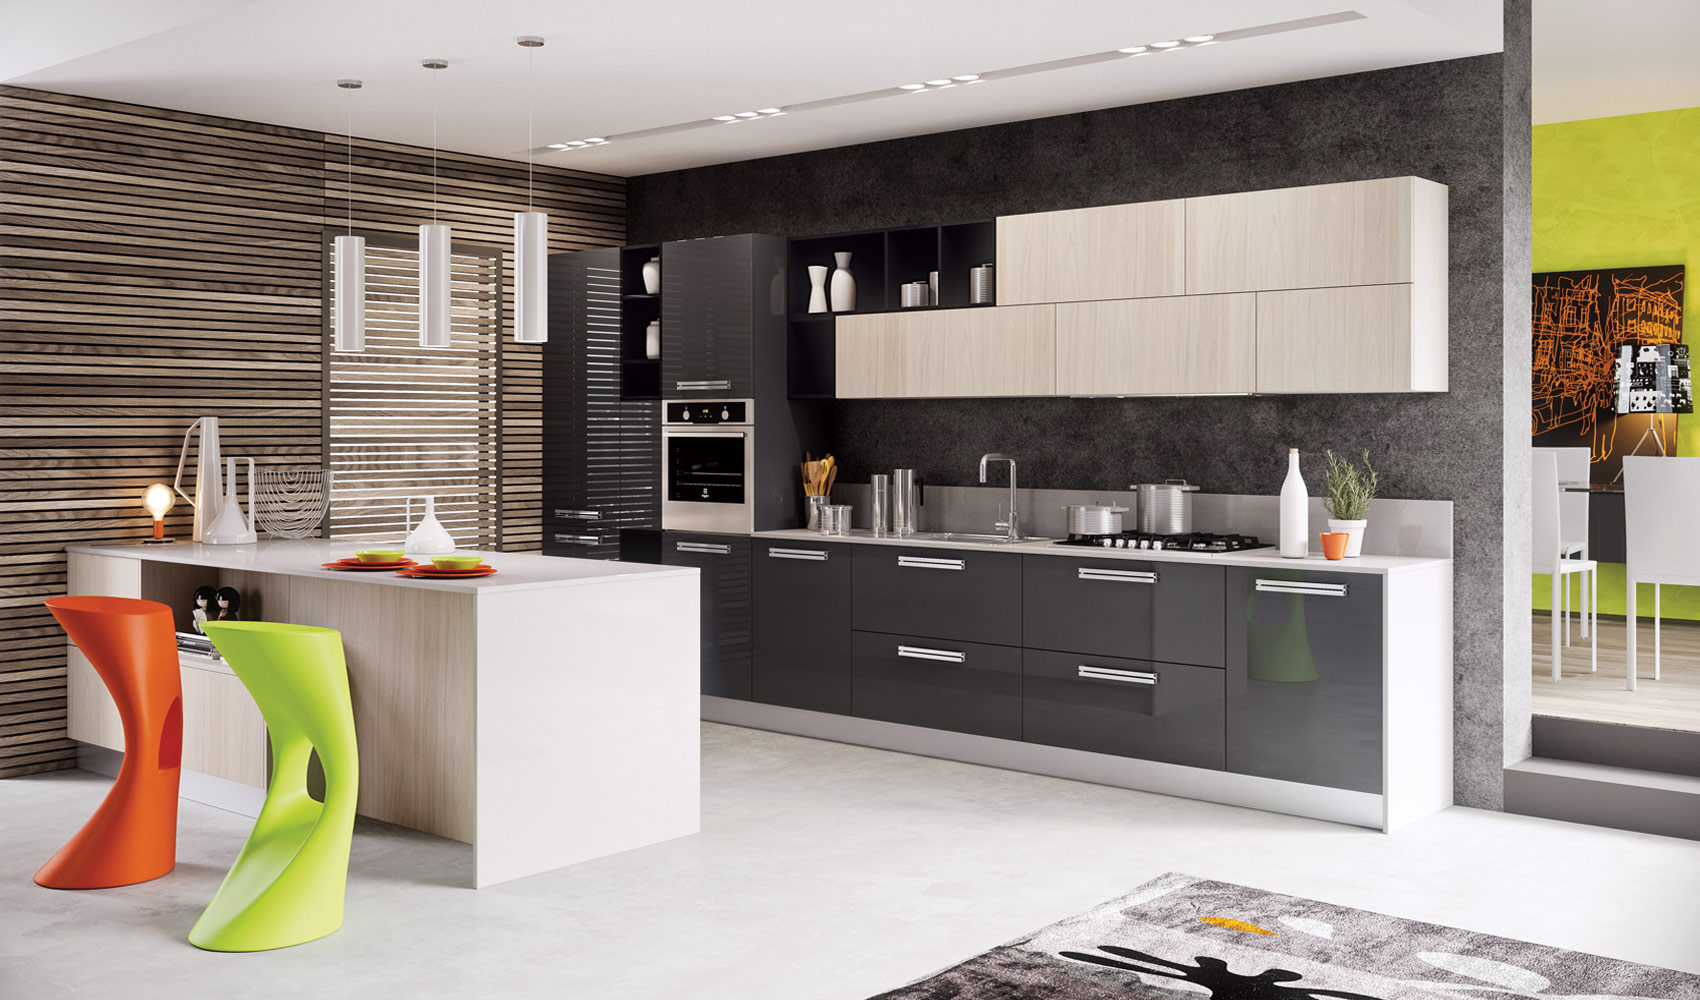 Contemporary kitchen design interior design ideas for Contemporary kitchen design